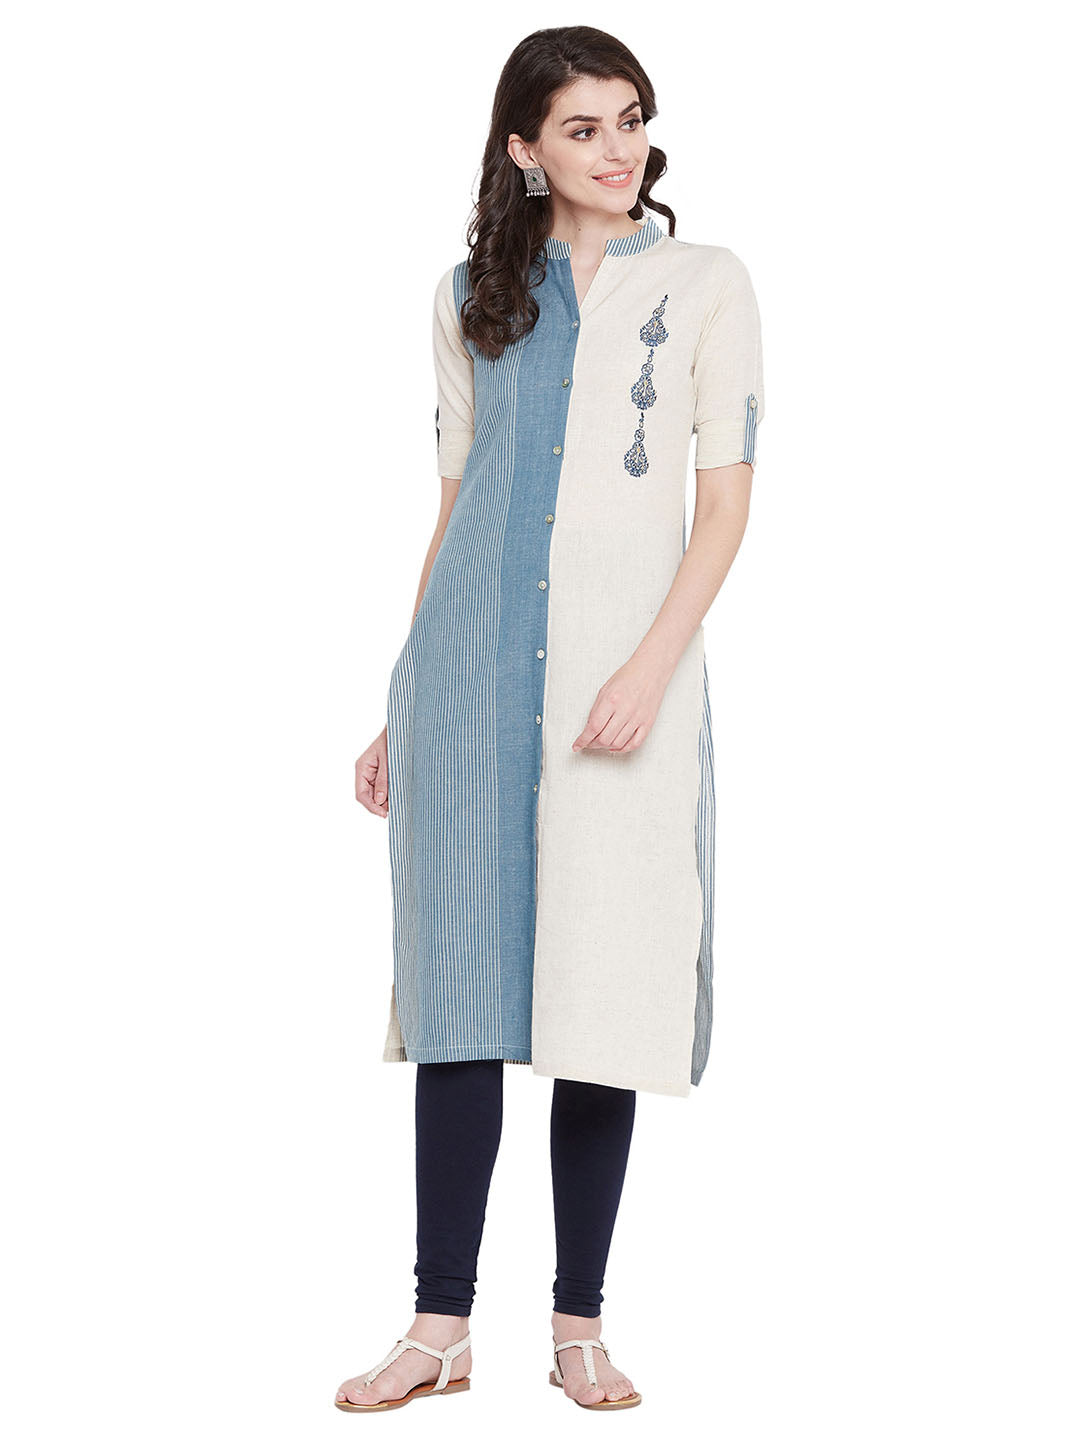 MEESAN Blue-Beige Cotton Striped Kurti for Women